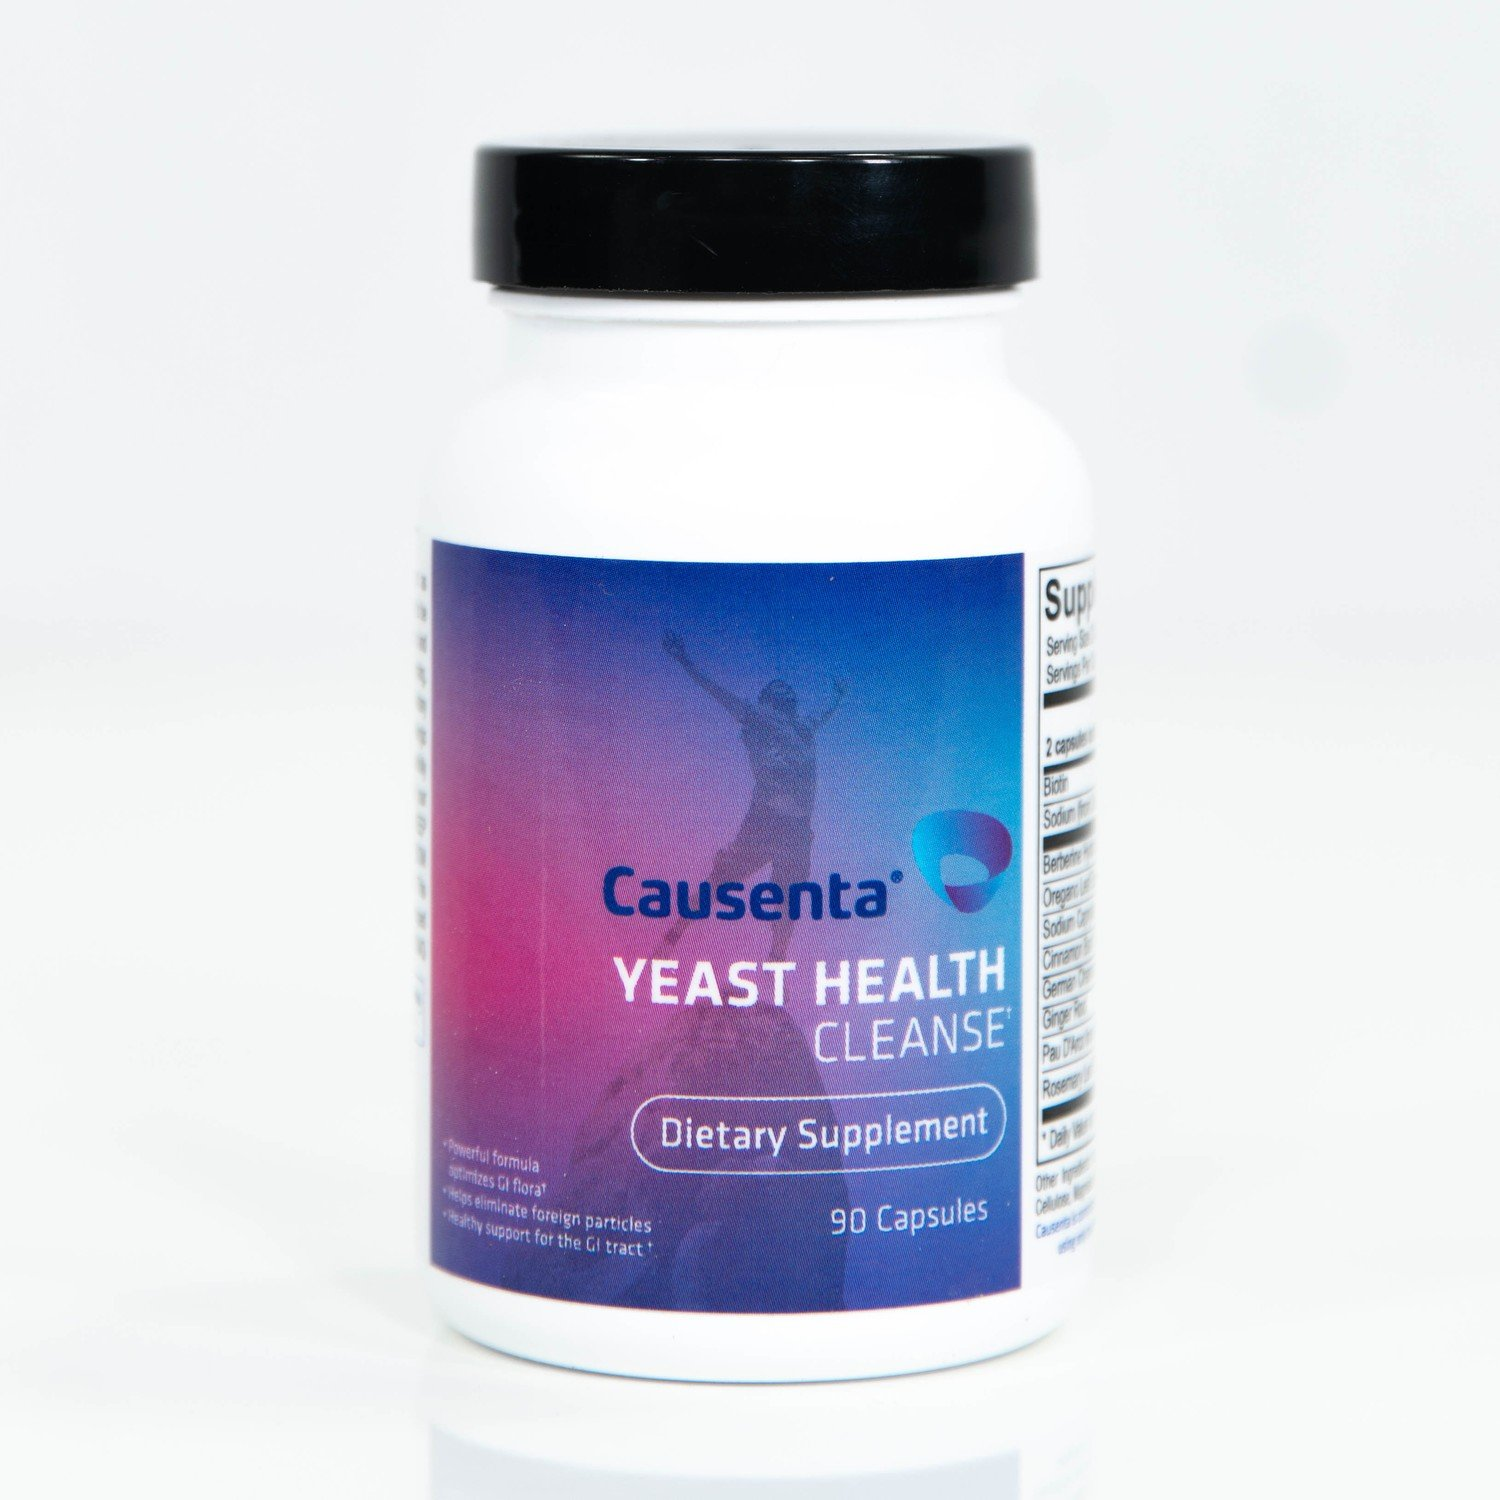 Yeast Health Cleanse - Berberine, Oregano and Ginger